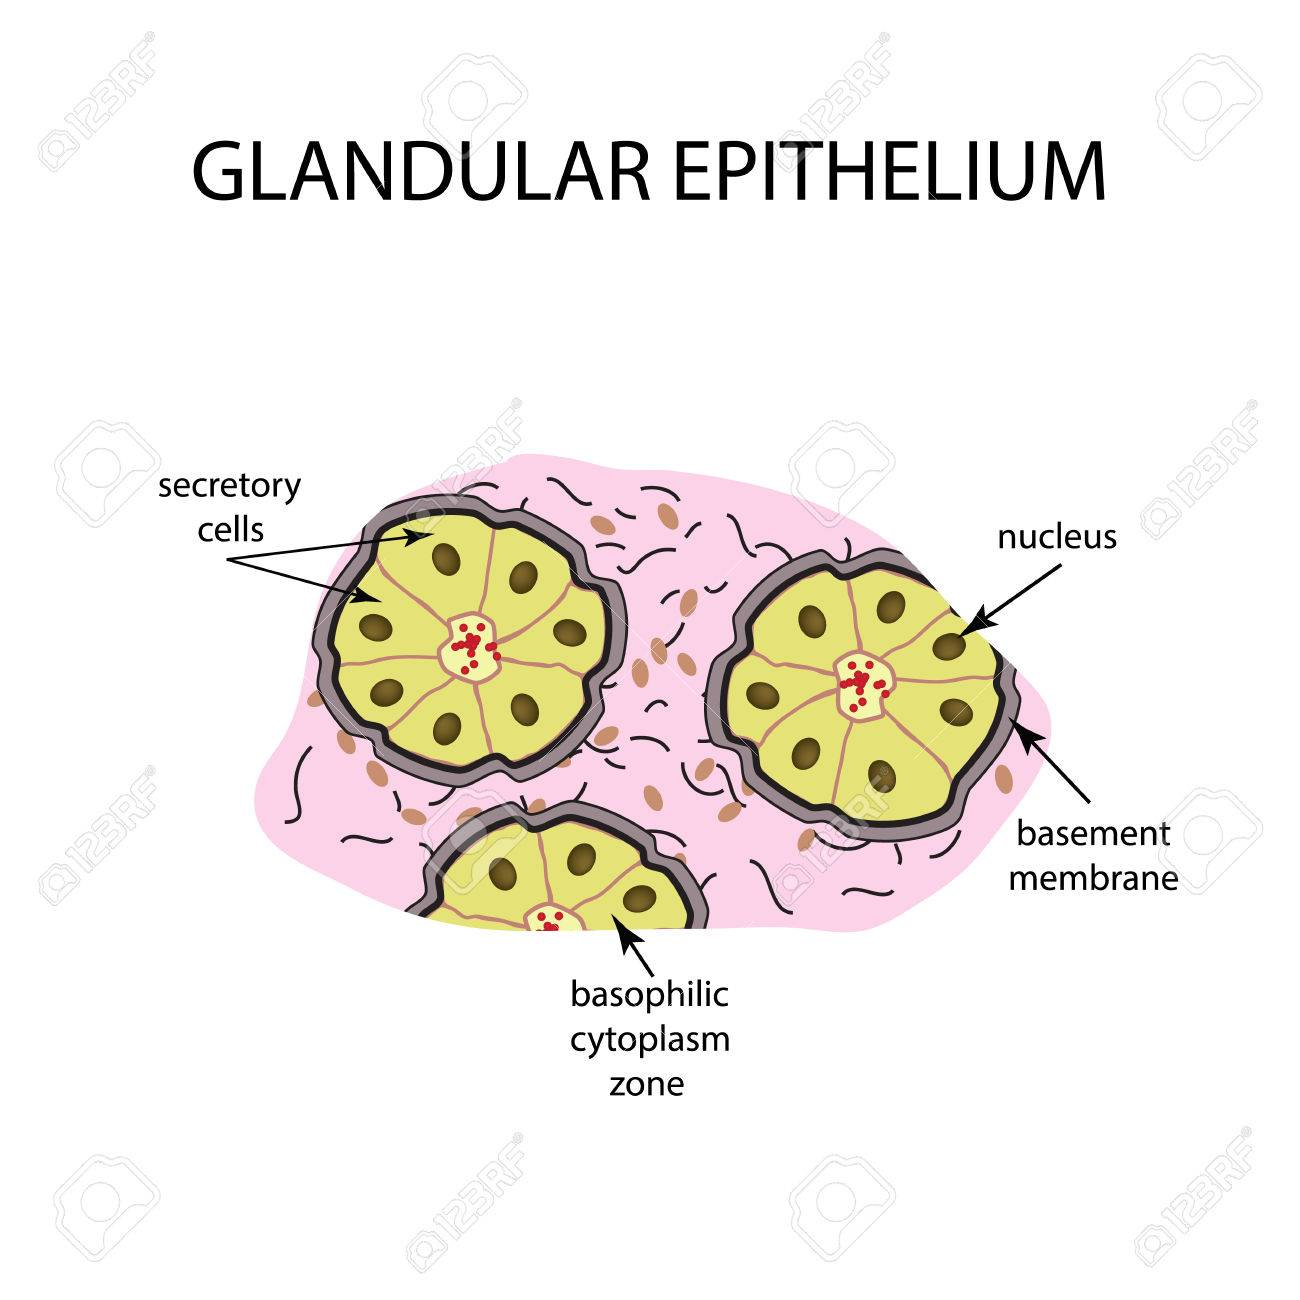 Glandular Epithelium Diagram